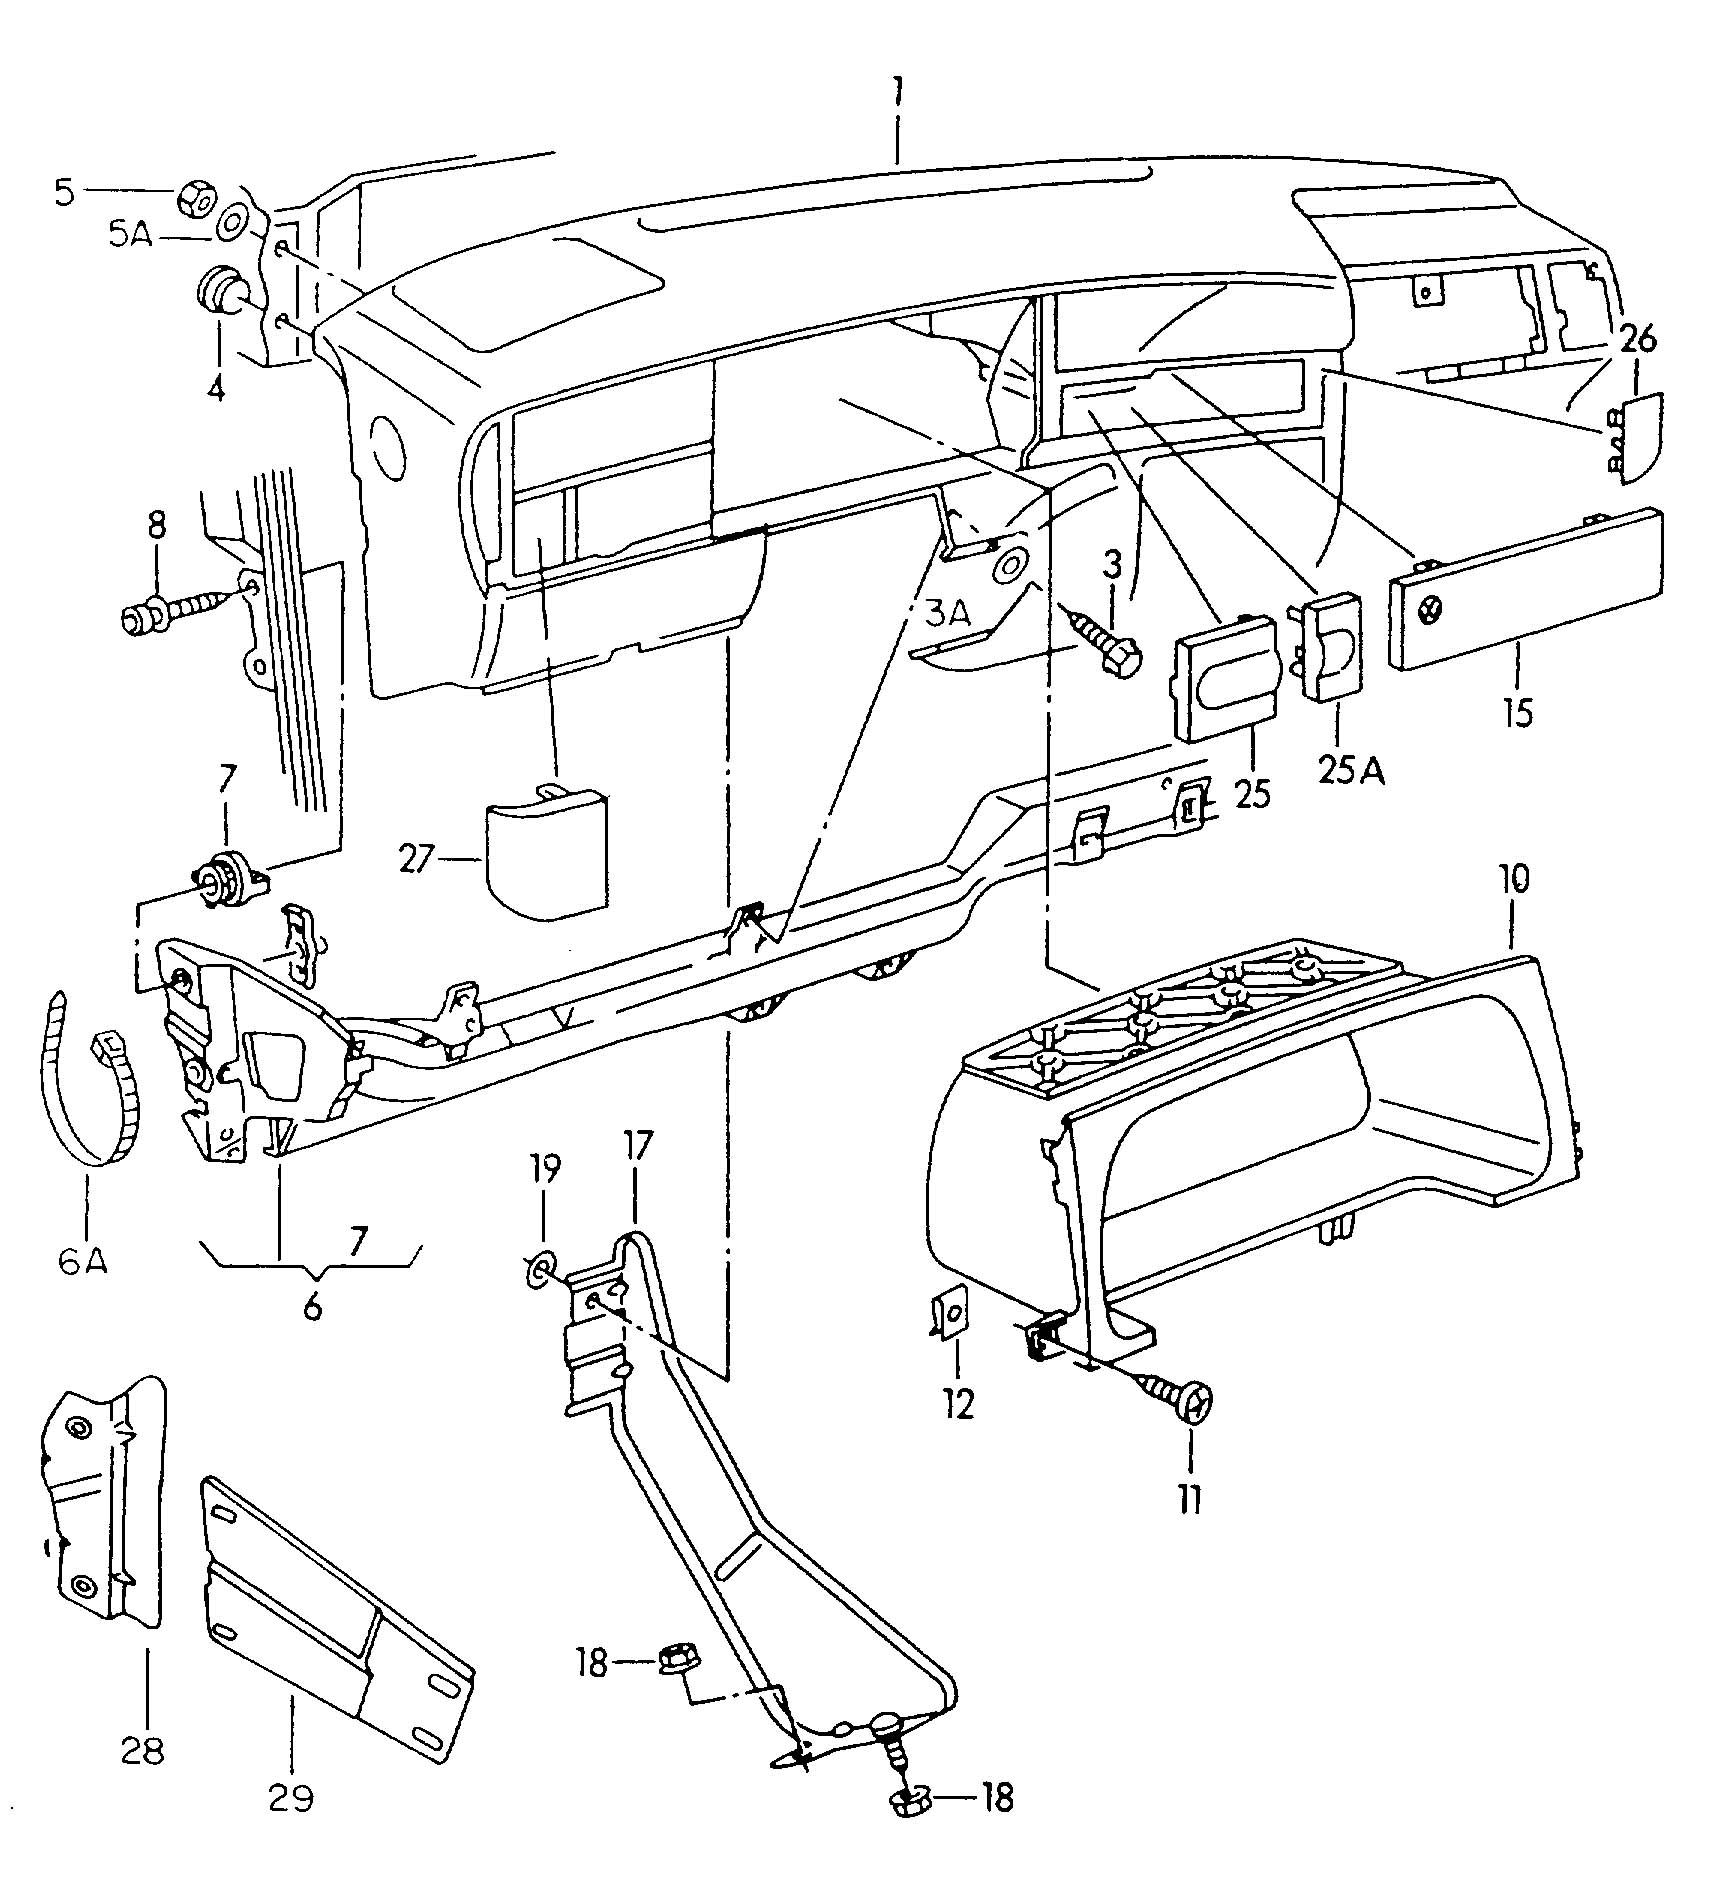 99 vw beetle model diagram great installation of wiring diagram 73 Super Beetle Wiring Diagram 99 vw beetle model diagram imageresizertool 99 vw beetle red 03 new beetle electrical board